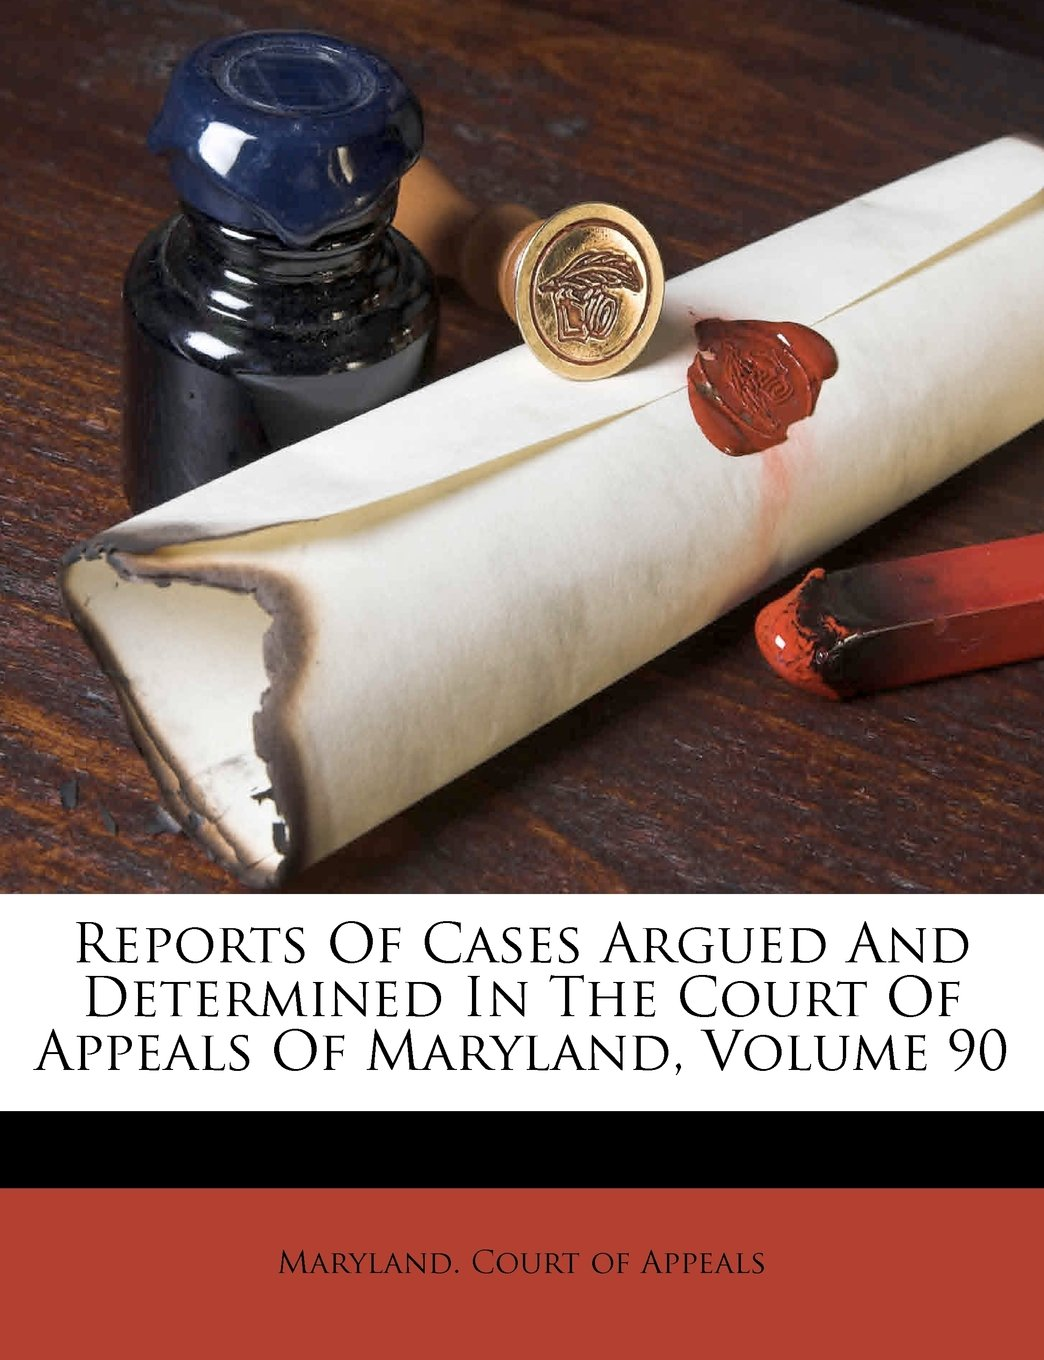 Download Reports Of Cases Argued And Determined In The Court Of Appeals Of Maryland, Volume 90 PDF